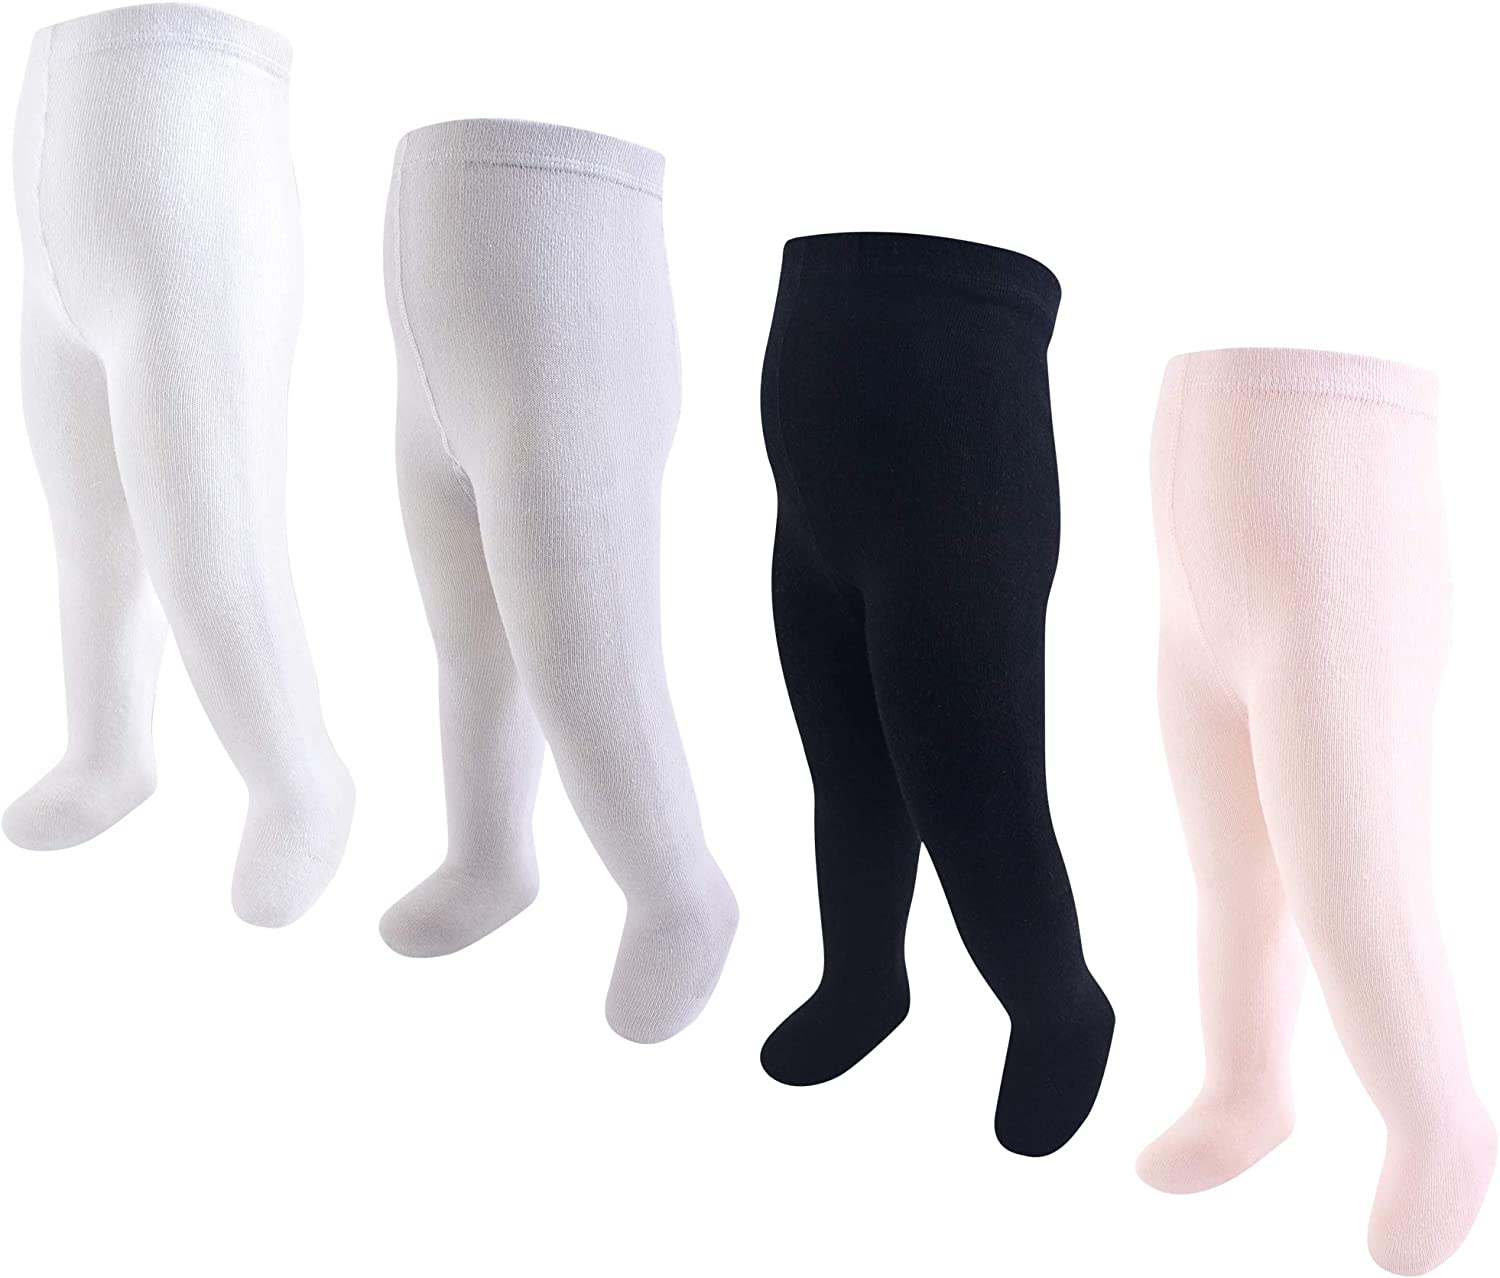 Hudson Baby Toddler and Baby Girl Cotton Tights